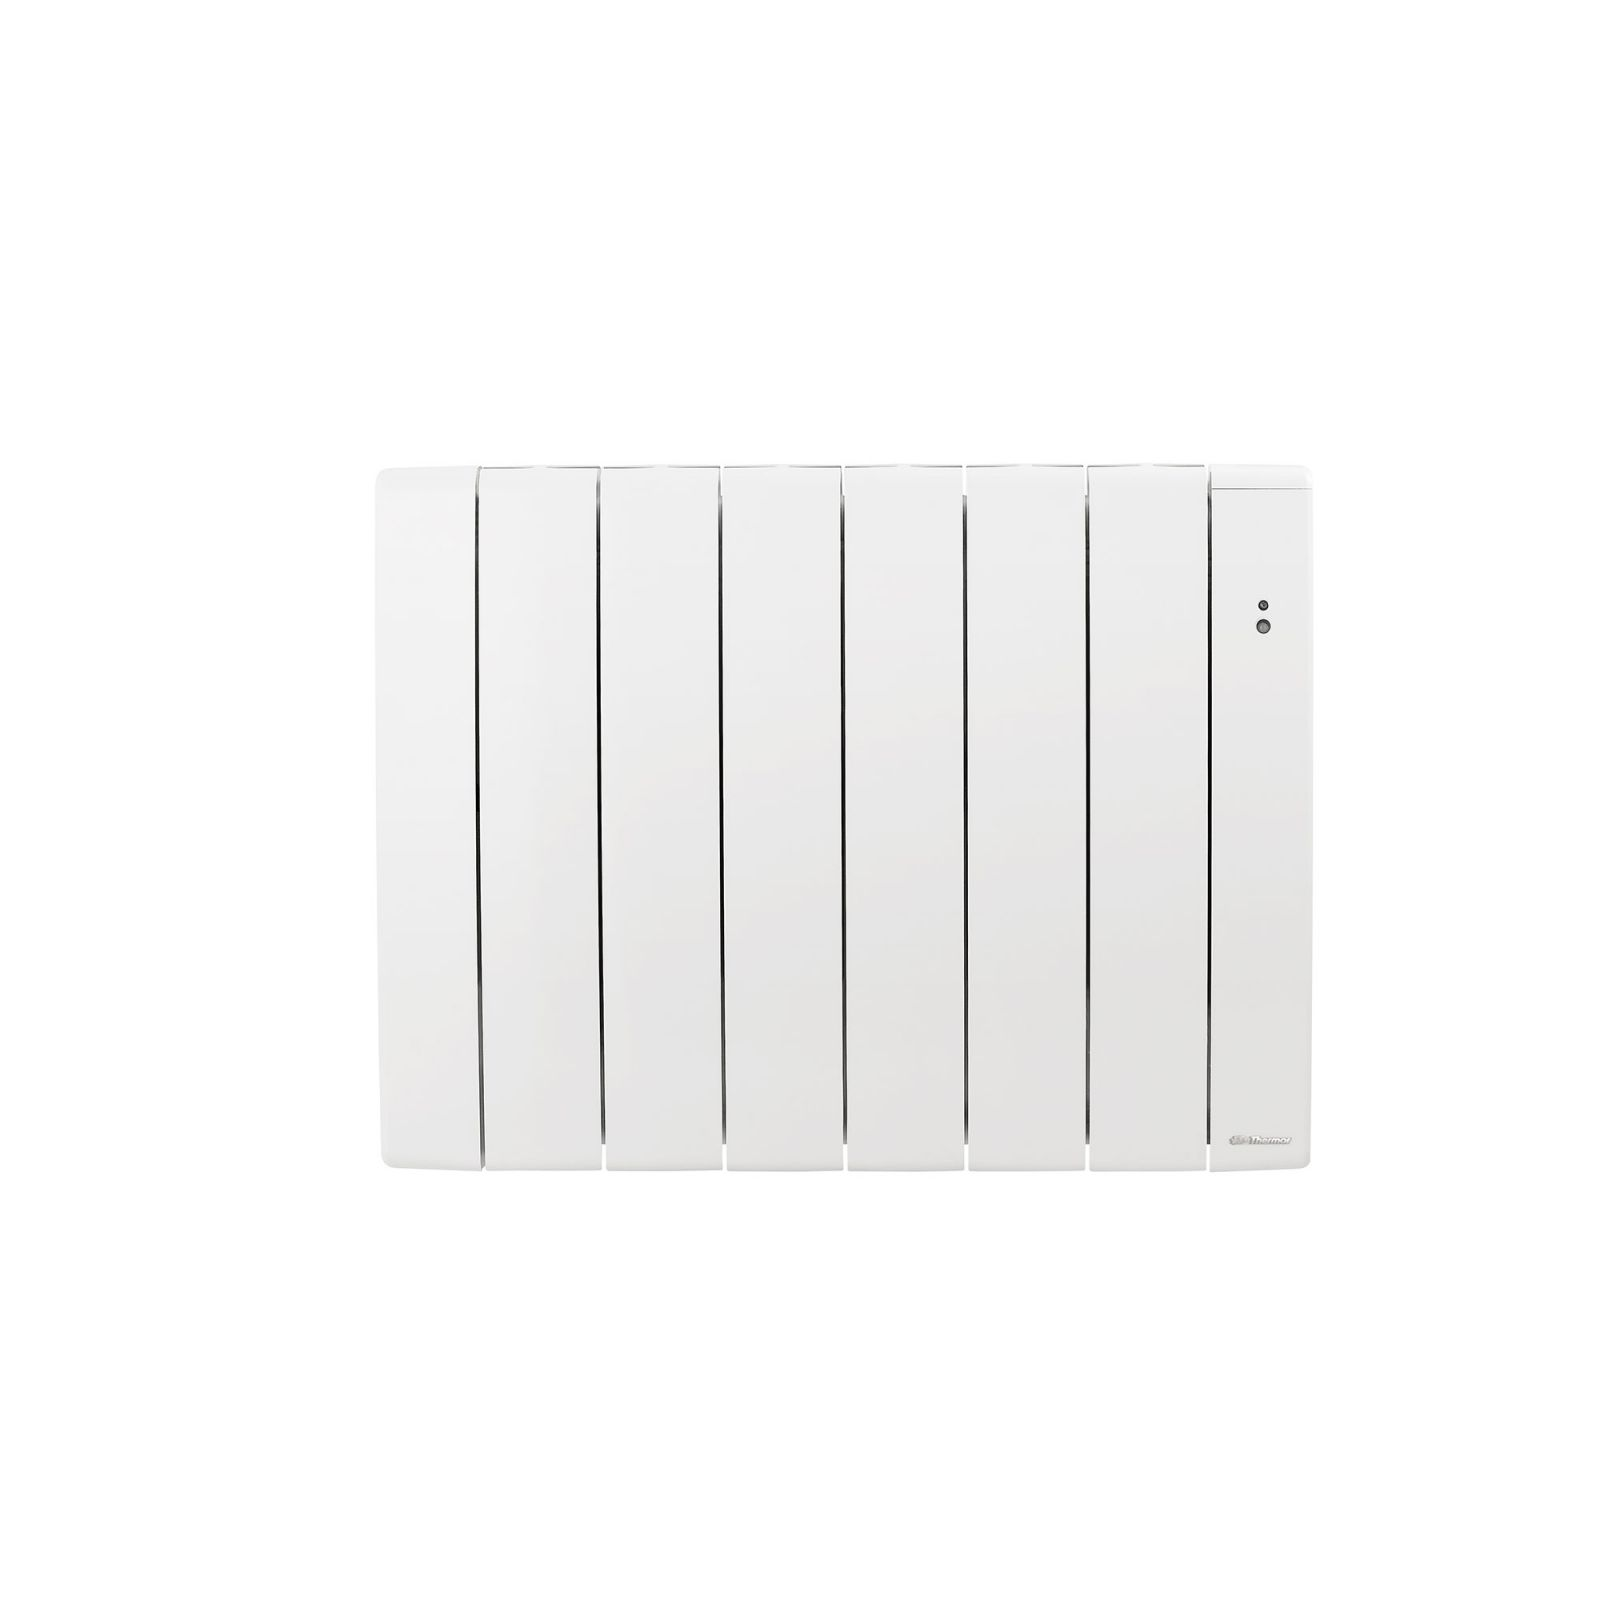 radiateur bilbao 3 1000w horizontal thermor ebay. Black Bedroom Furniture Sets. Home Design Ideas